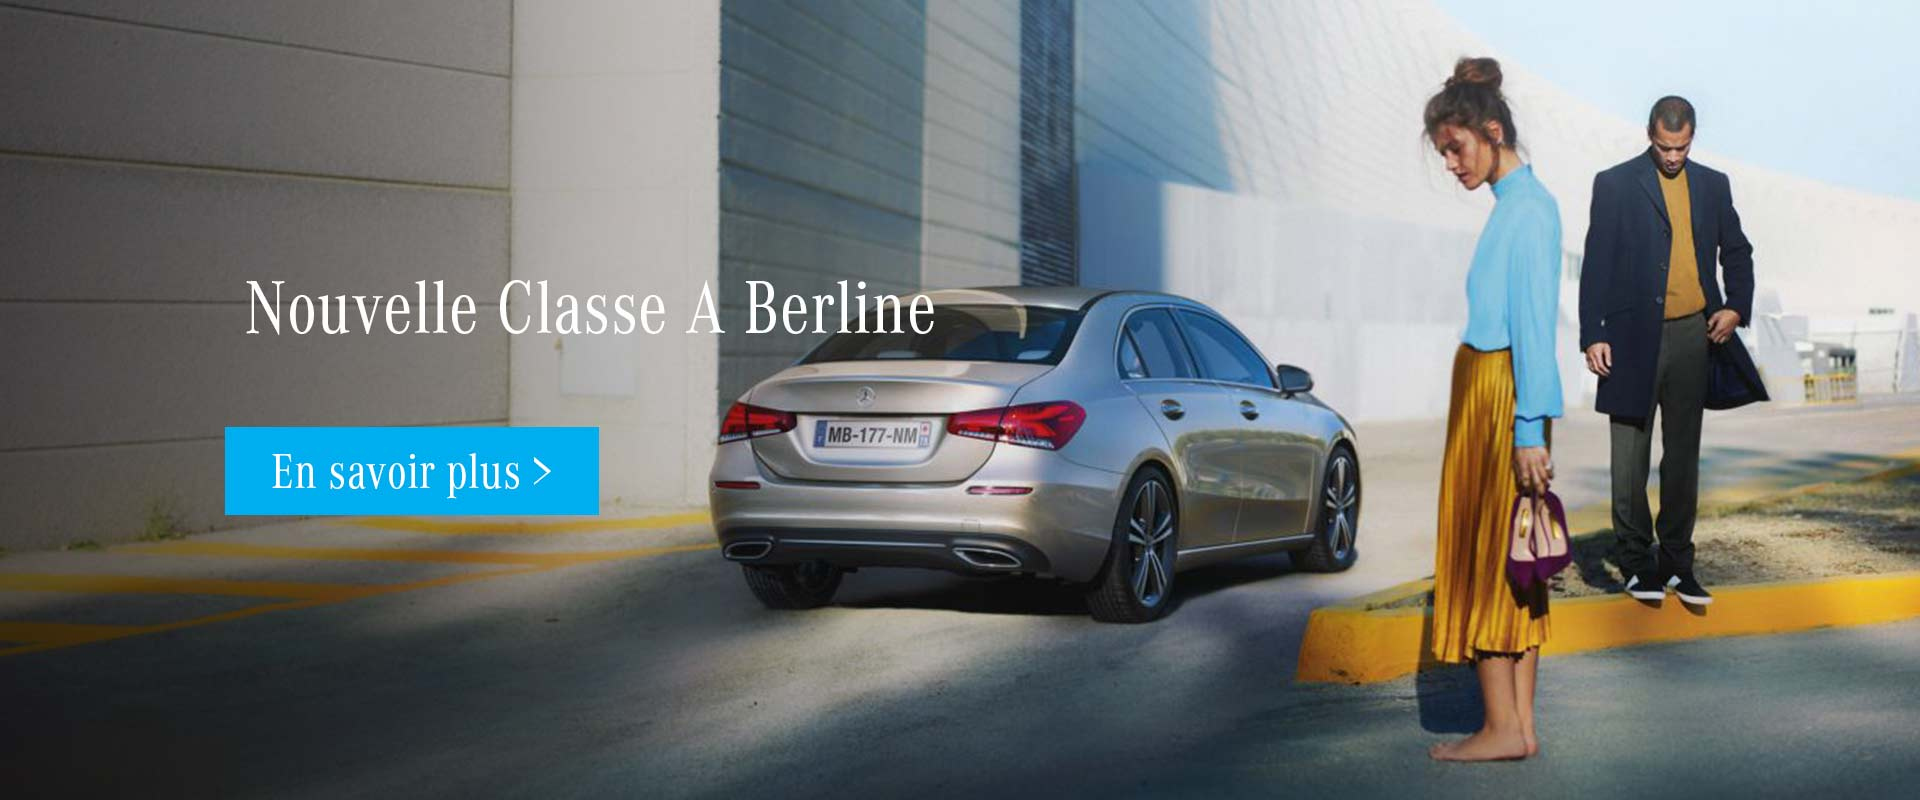 Mercedes benz groupe kroely garage v hicule occasion 0km et neuf reprise - Garage reprise voiture occasion ...